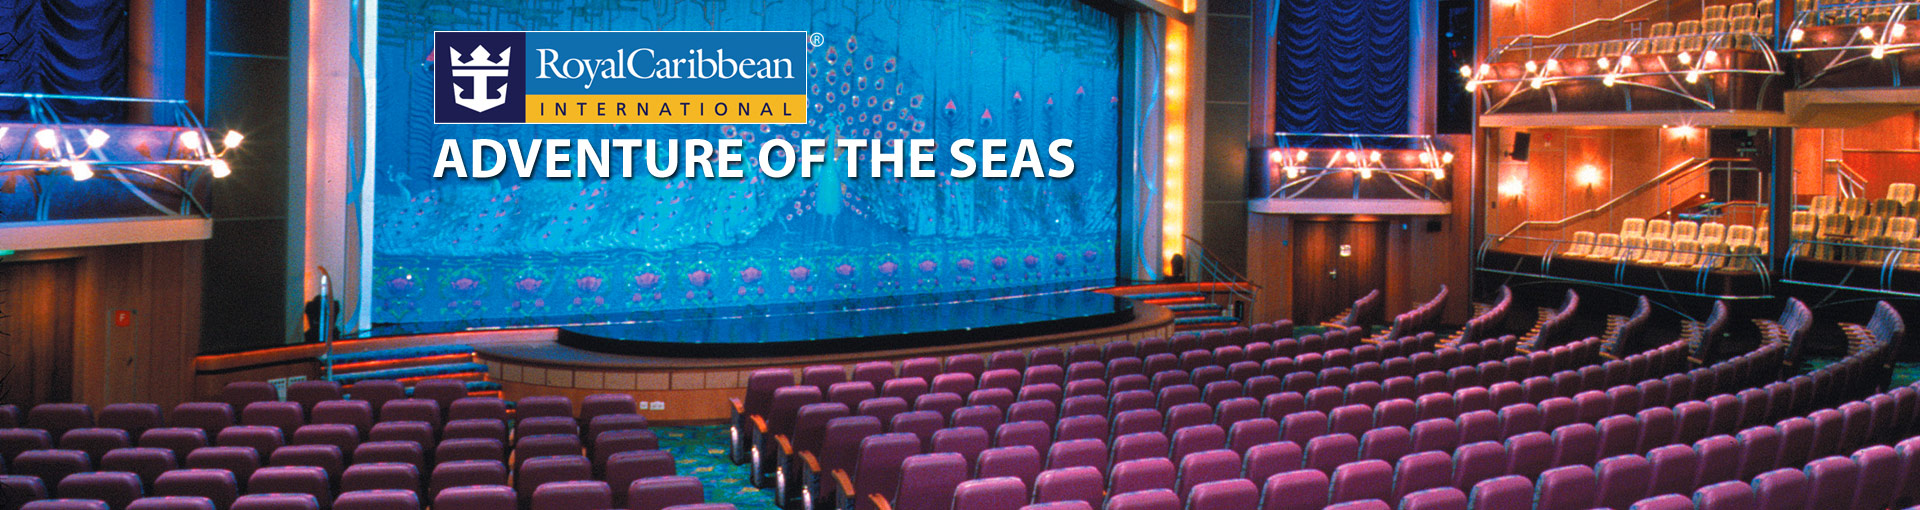 Royal Caribbean Adventure of the Seas cruise ship